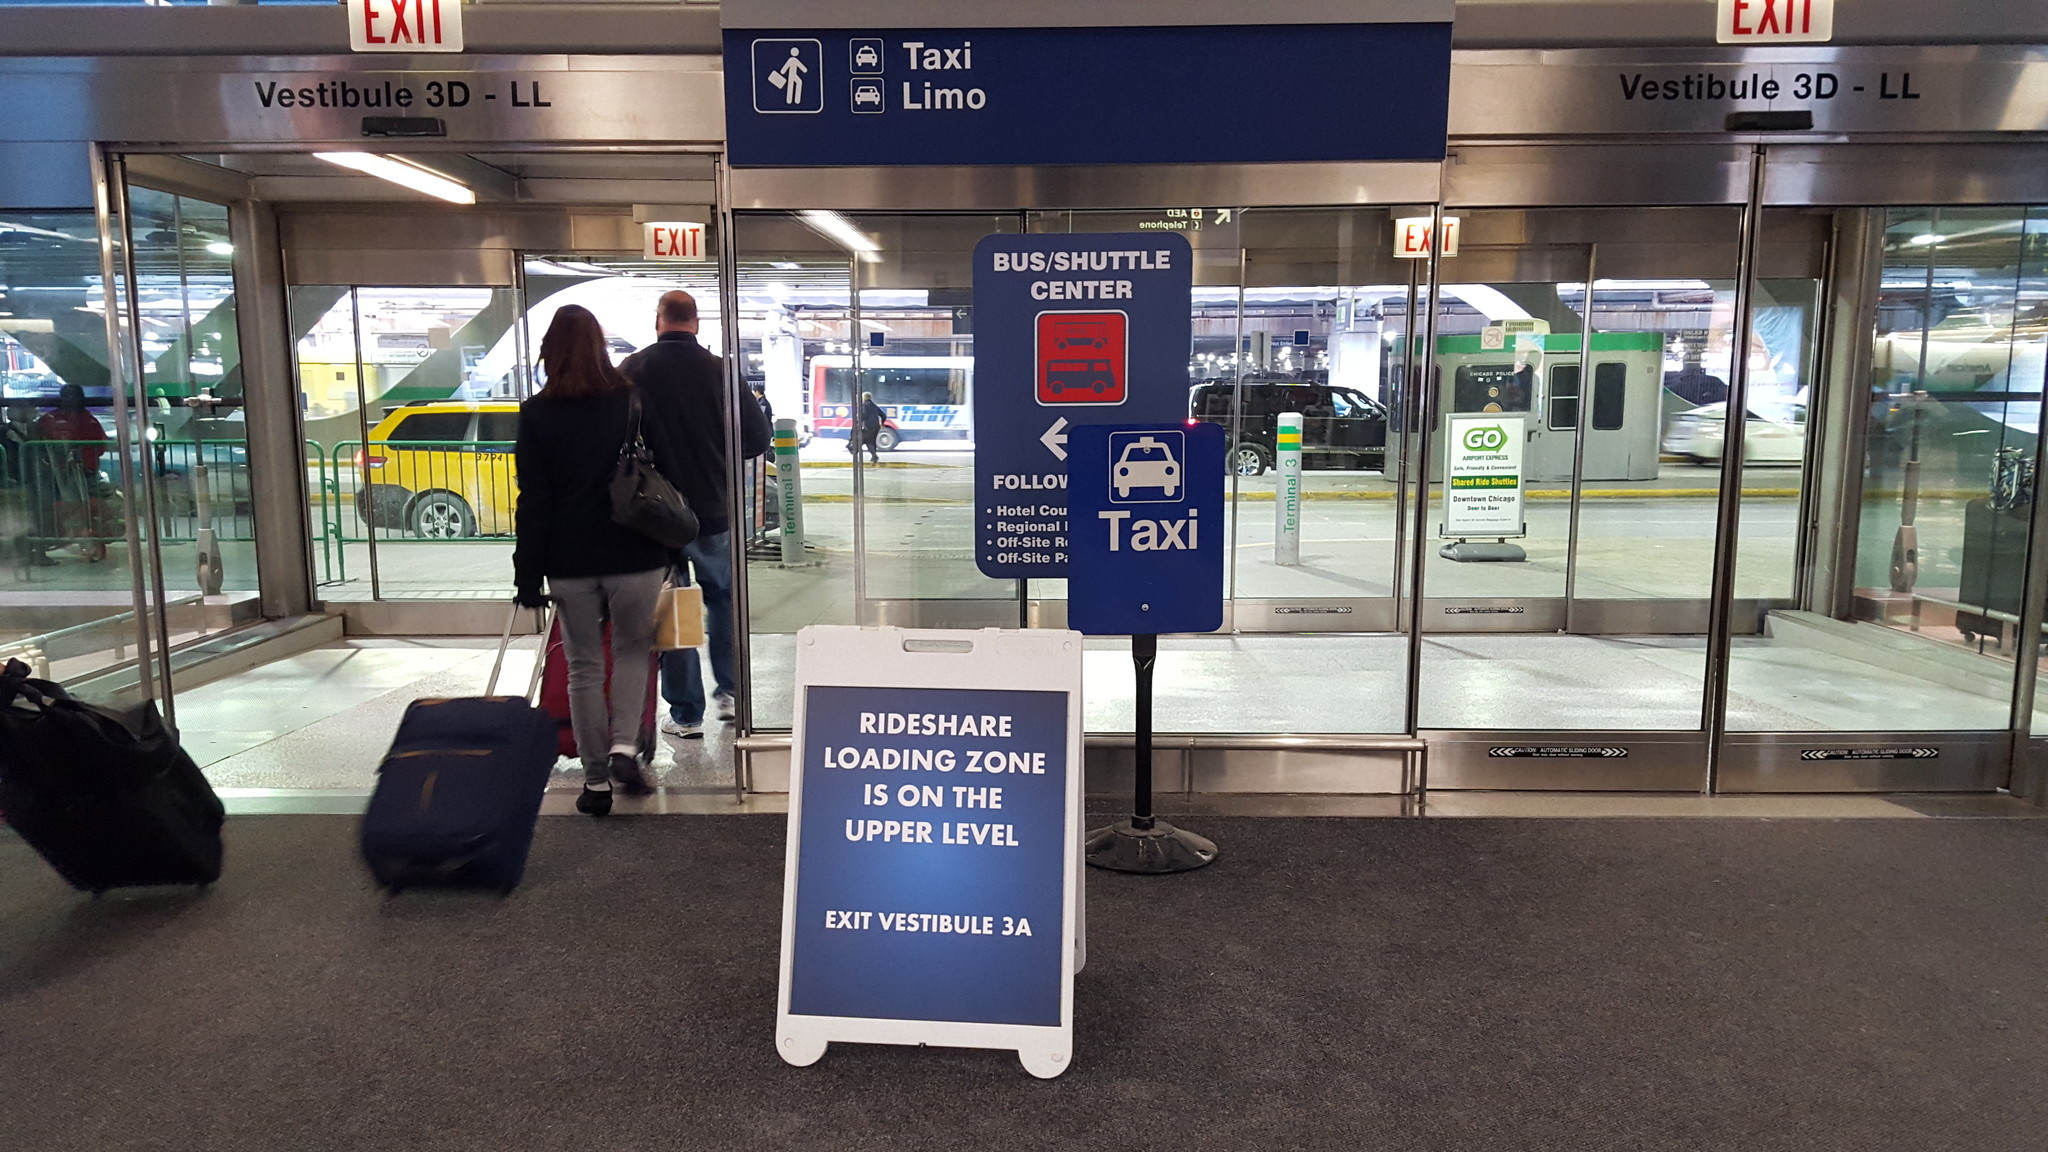 Get A Car With Uber >> Rideshare companies receive steady business at Chicago airports - RedEye Chicago